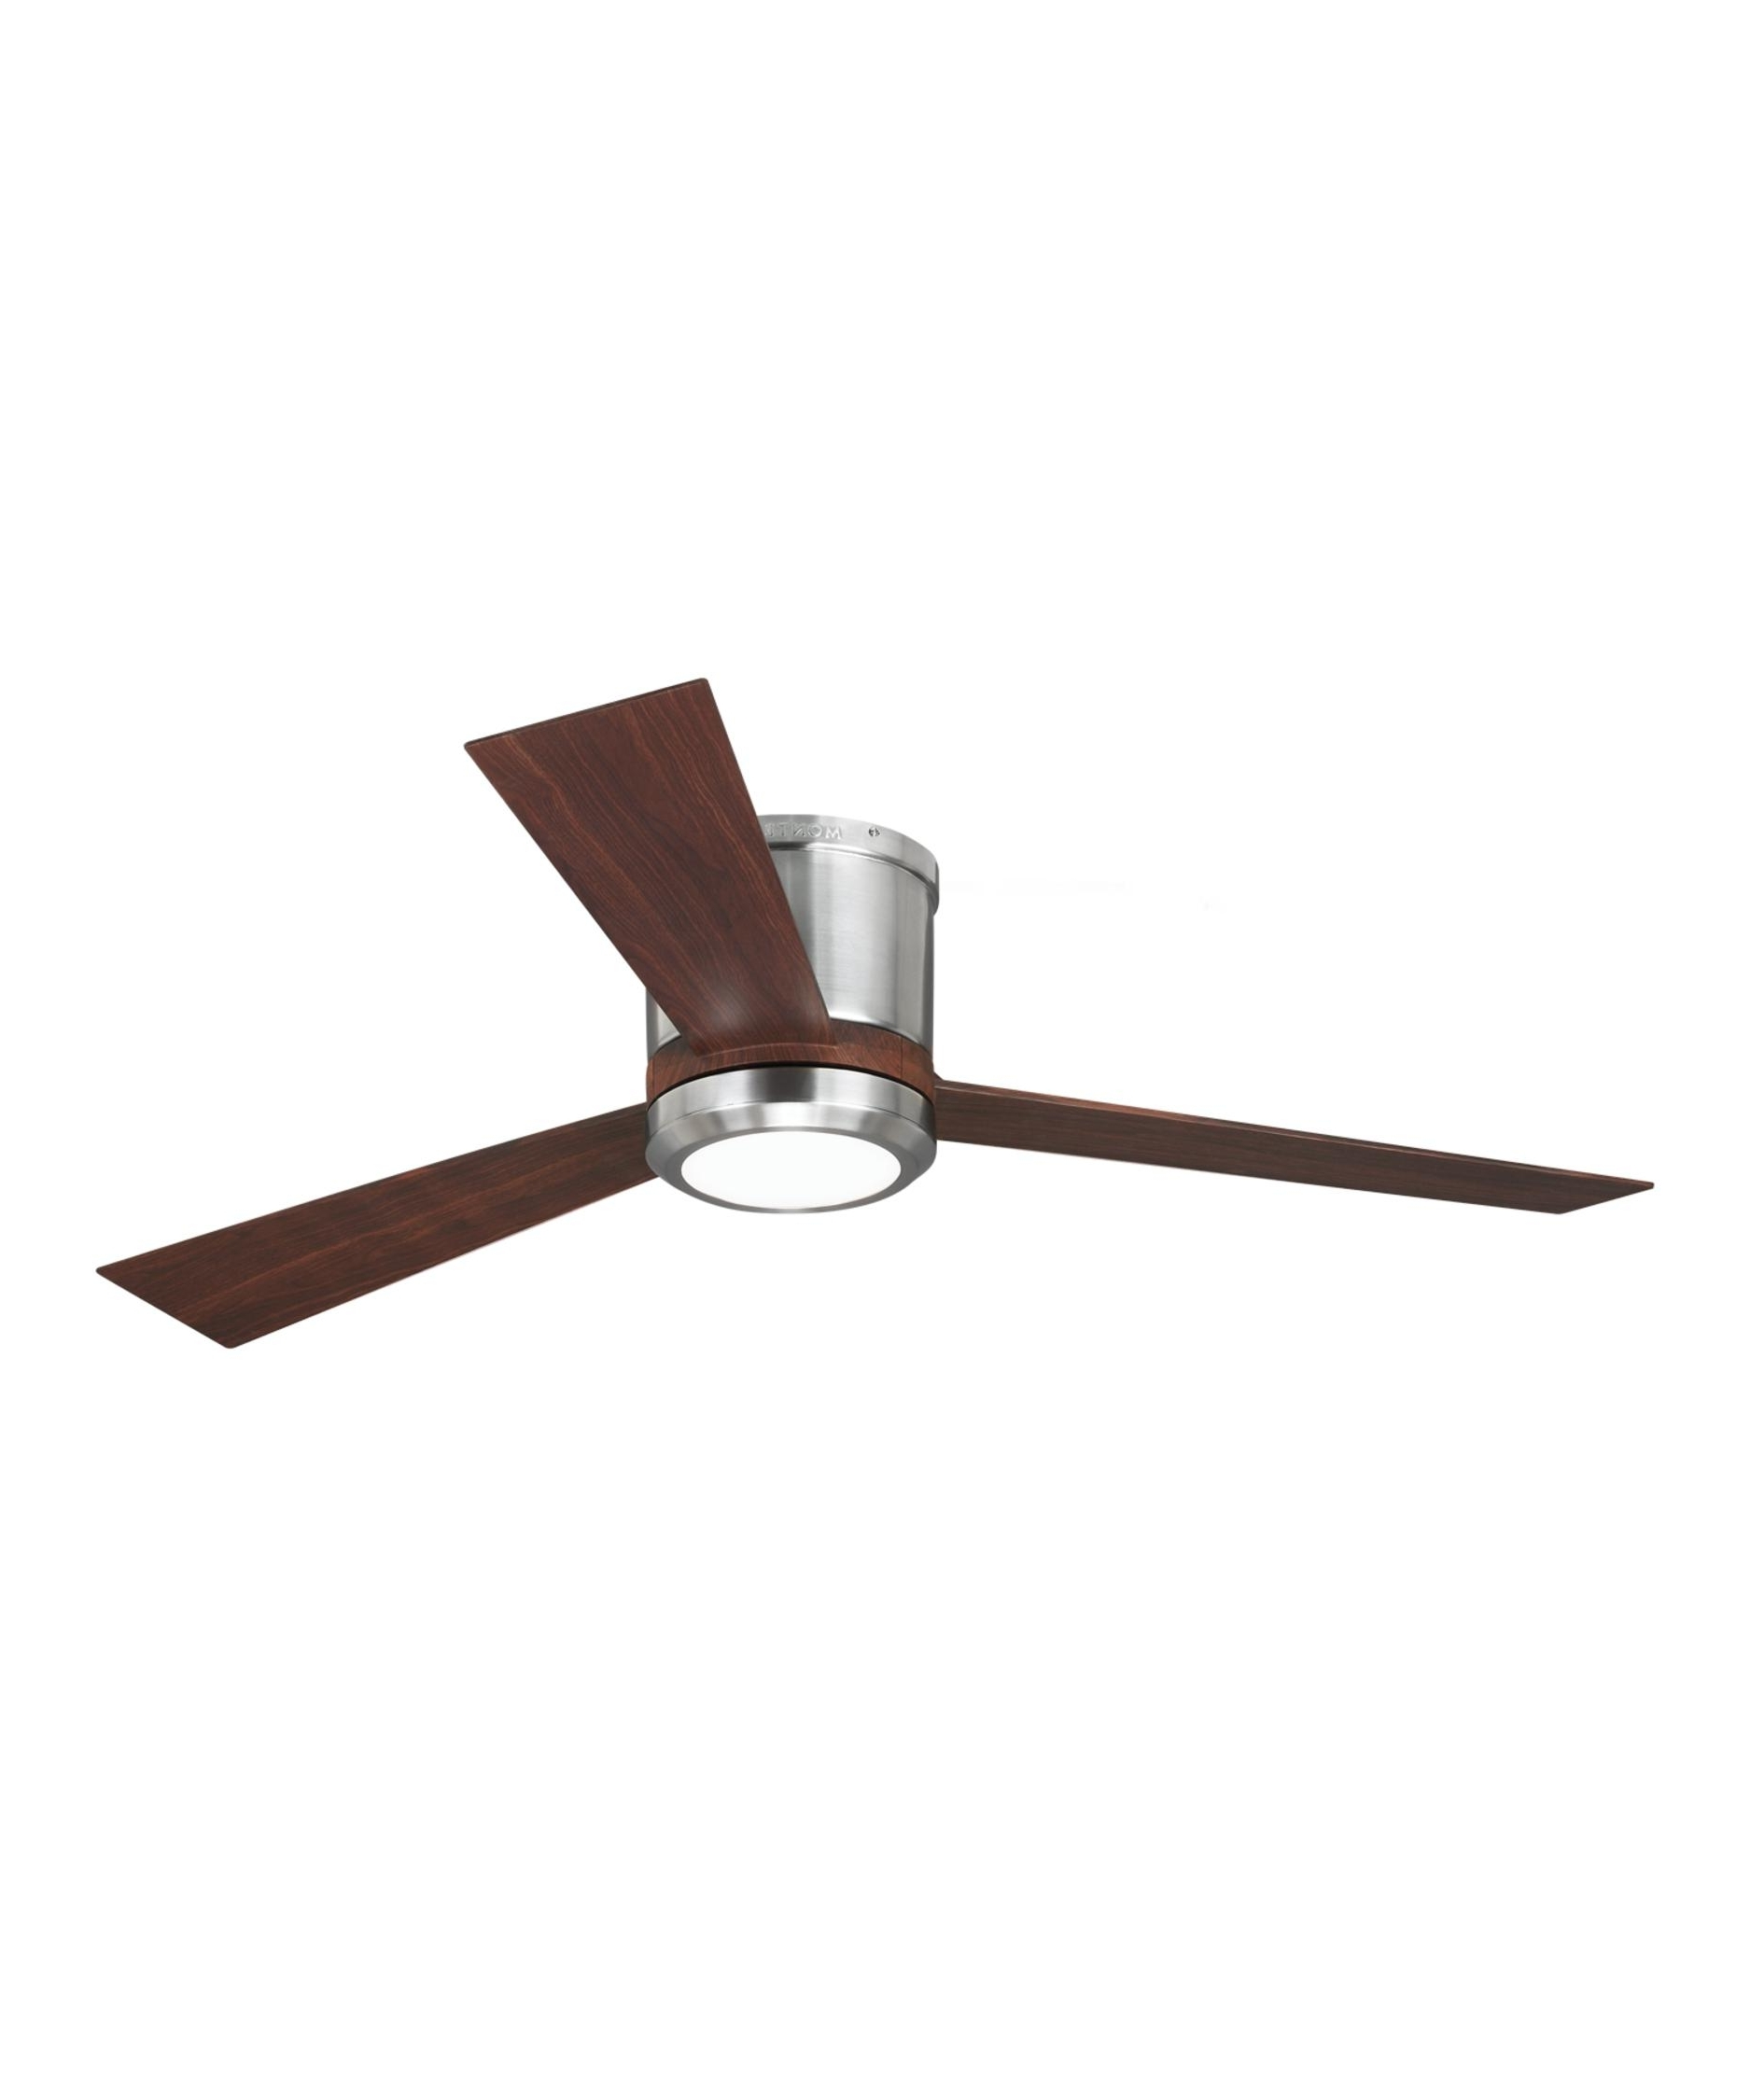 Fashionable 36 Inch Outdoor Ceiling Fans With Light Flush Mount Intended For 36 Inch Ceiling Fan With Light Flush Mount – Tariqalhanaee (View 7 of 20)